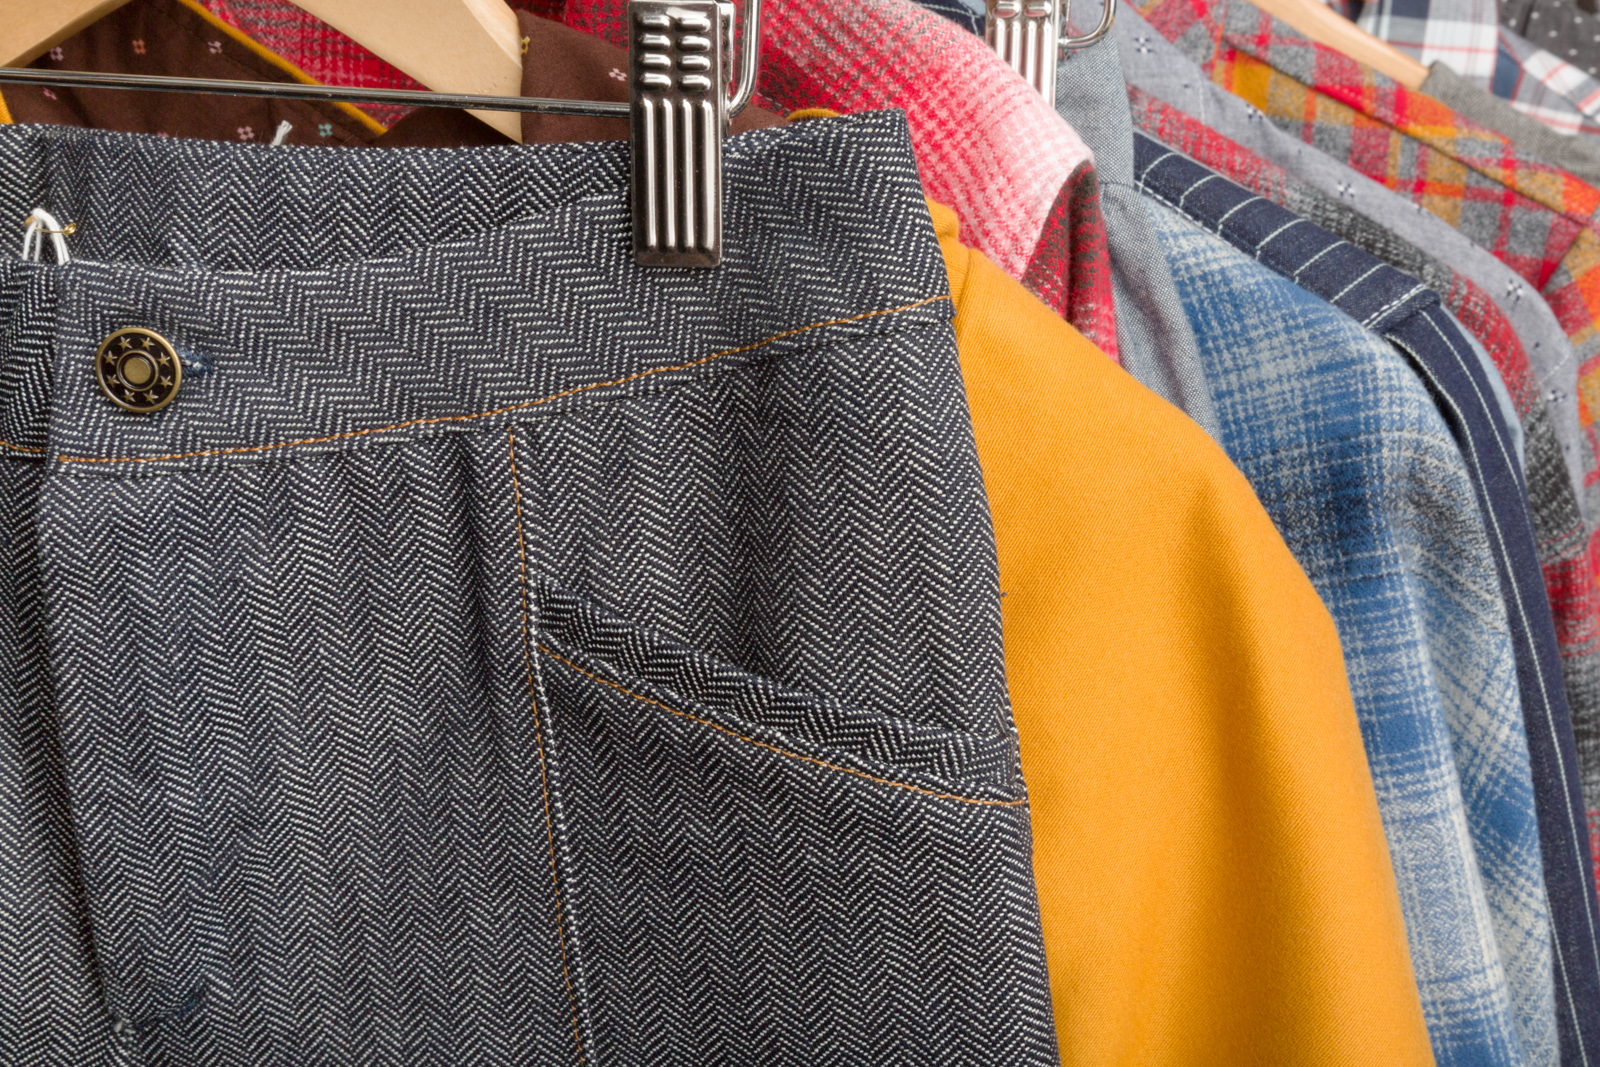 Jamie Jeans   designed by  Named Clothing  and made by   Andrea Taddicken  , featuring   Selvedge Denim